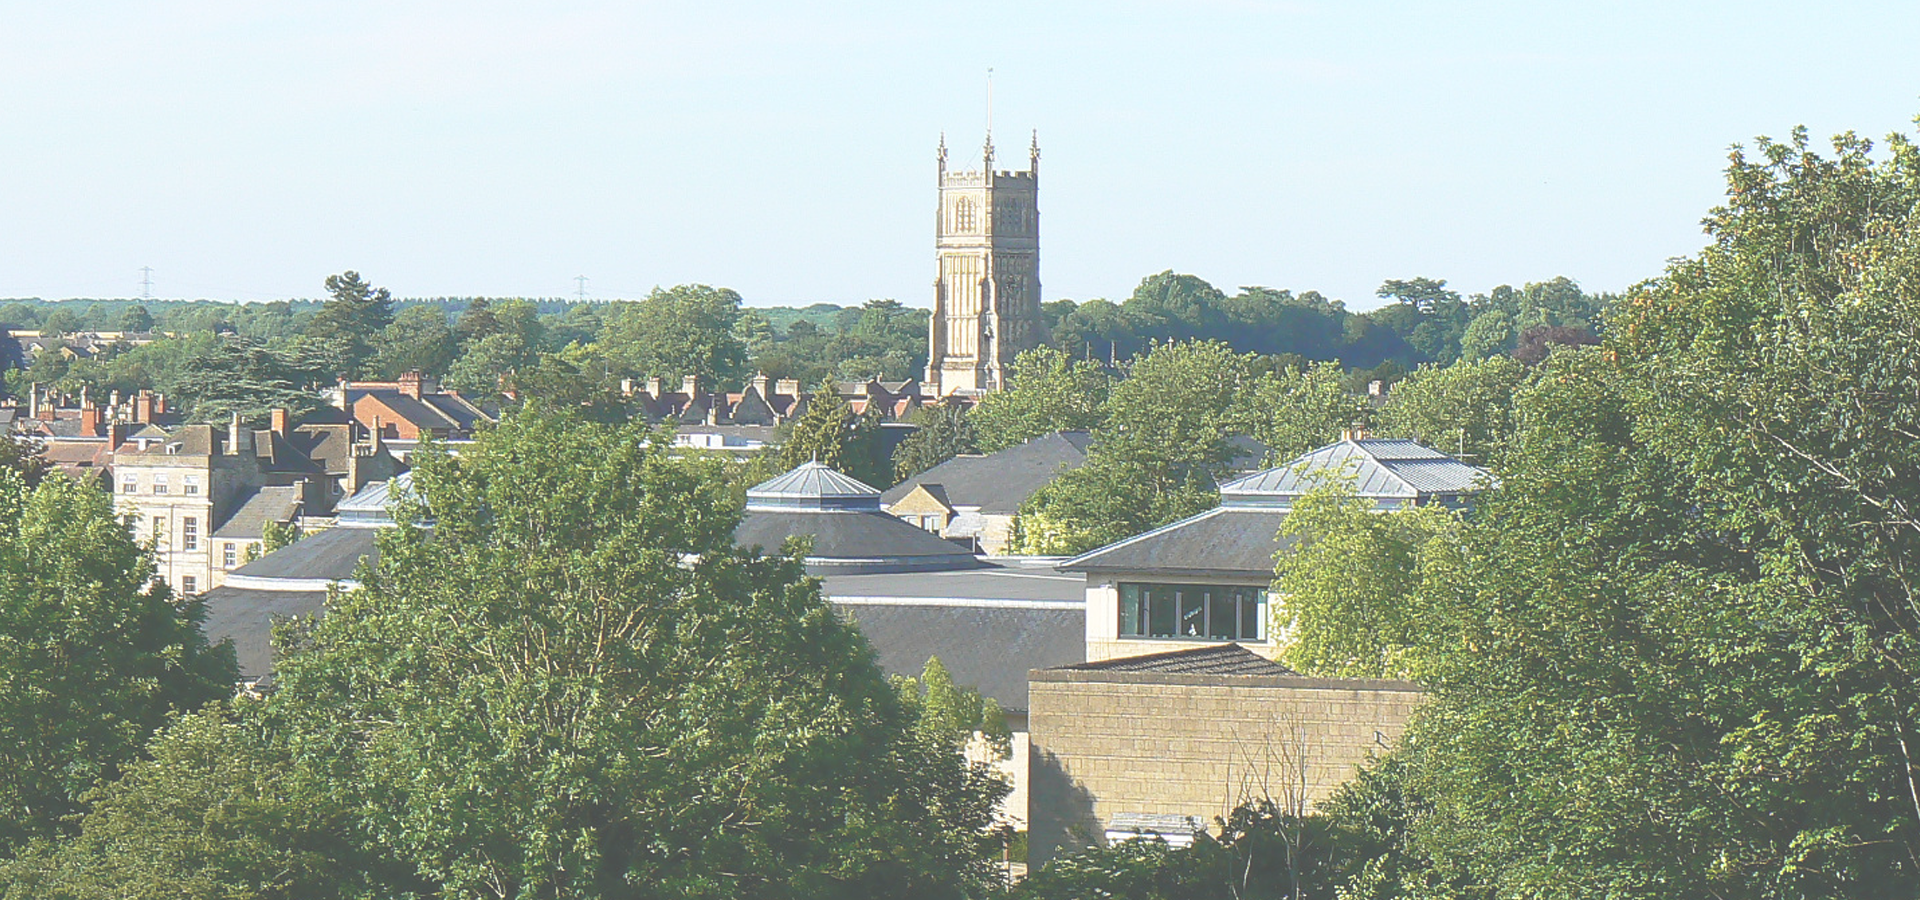 Peer-to-peer advisory in Cirencester, Gloucestershire, England, Great Britain